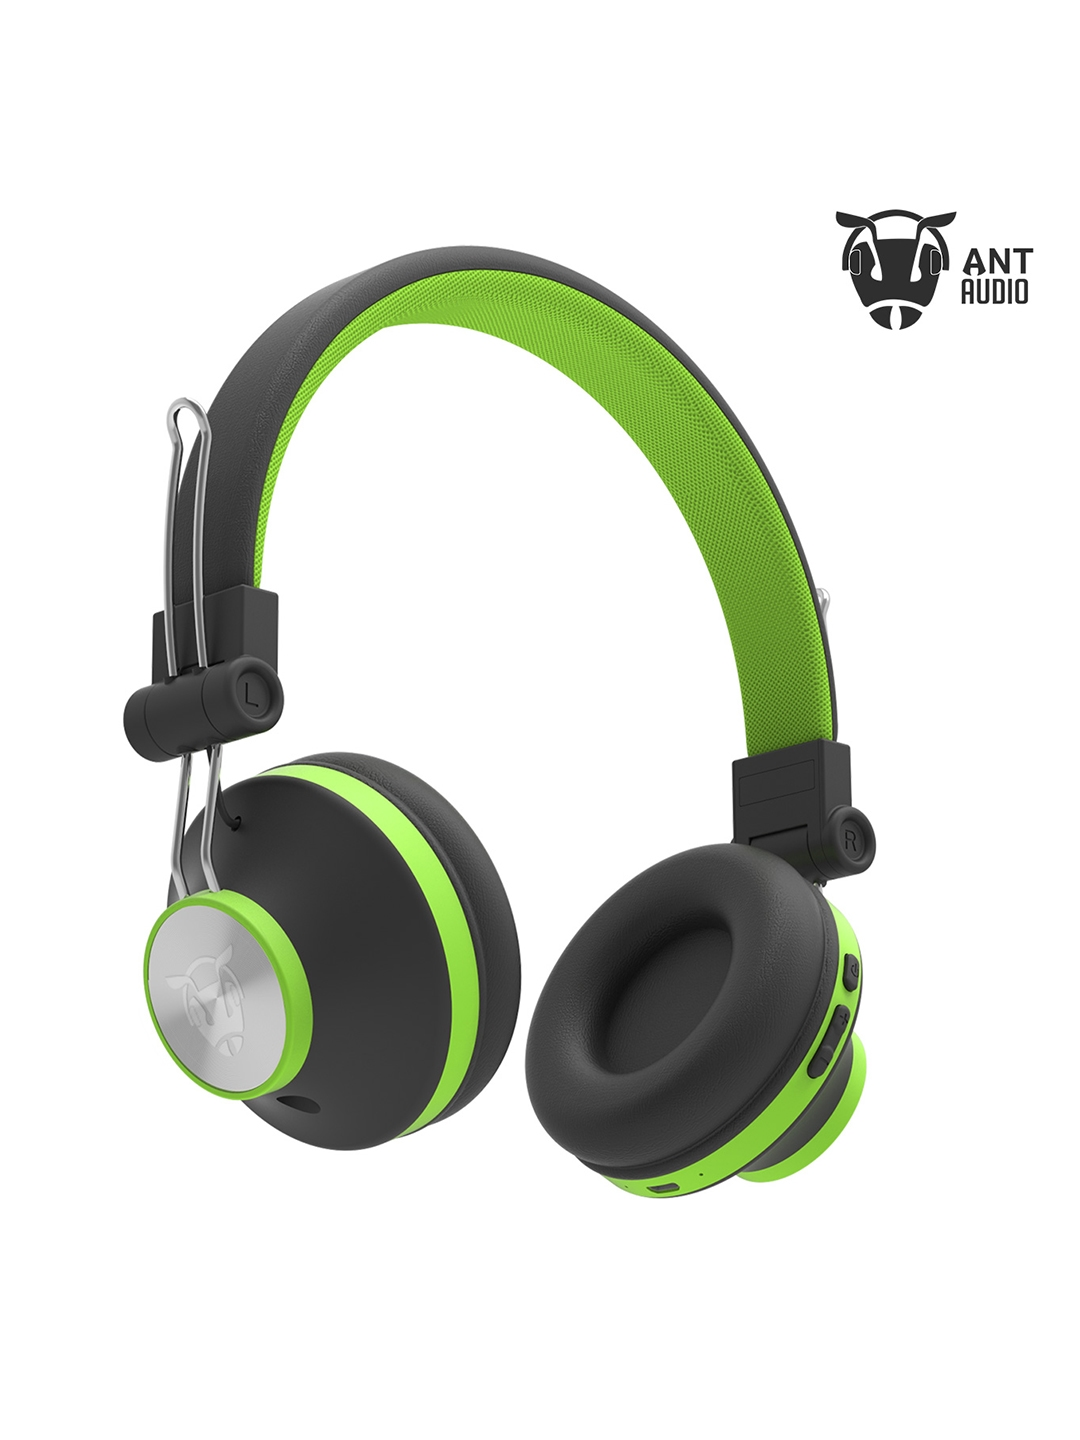 Ant Audio Unisex Green   Black Treble H82 On Ear Bluetooth Headphones